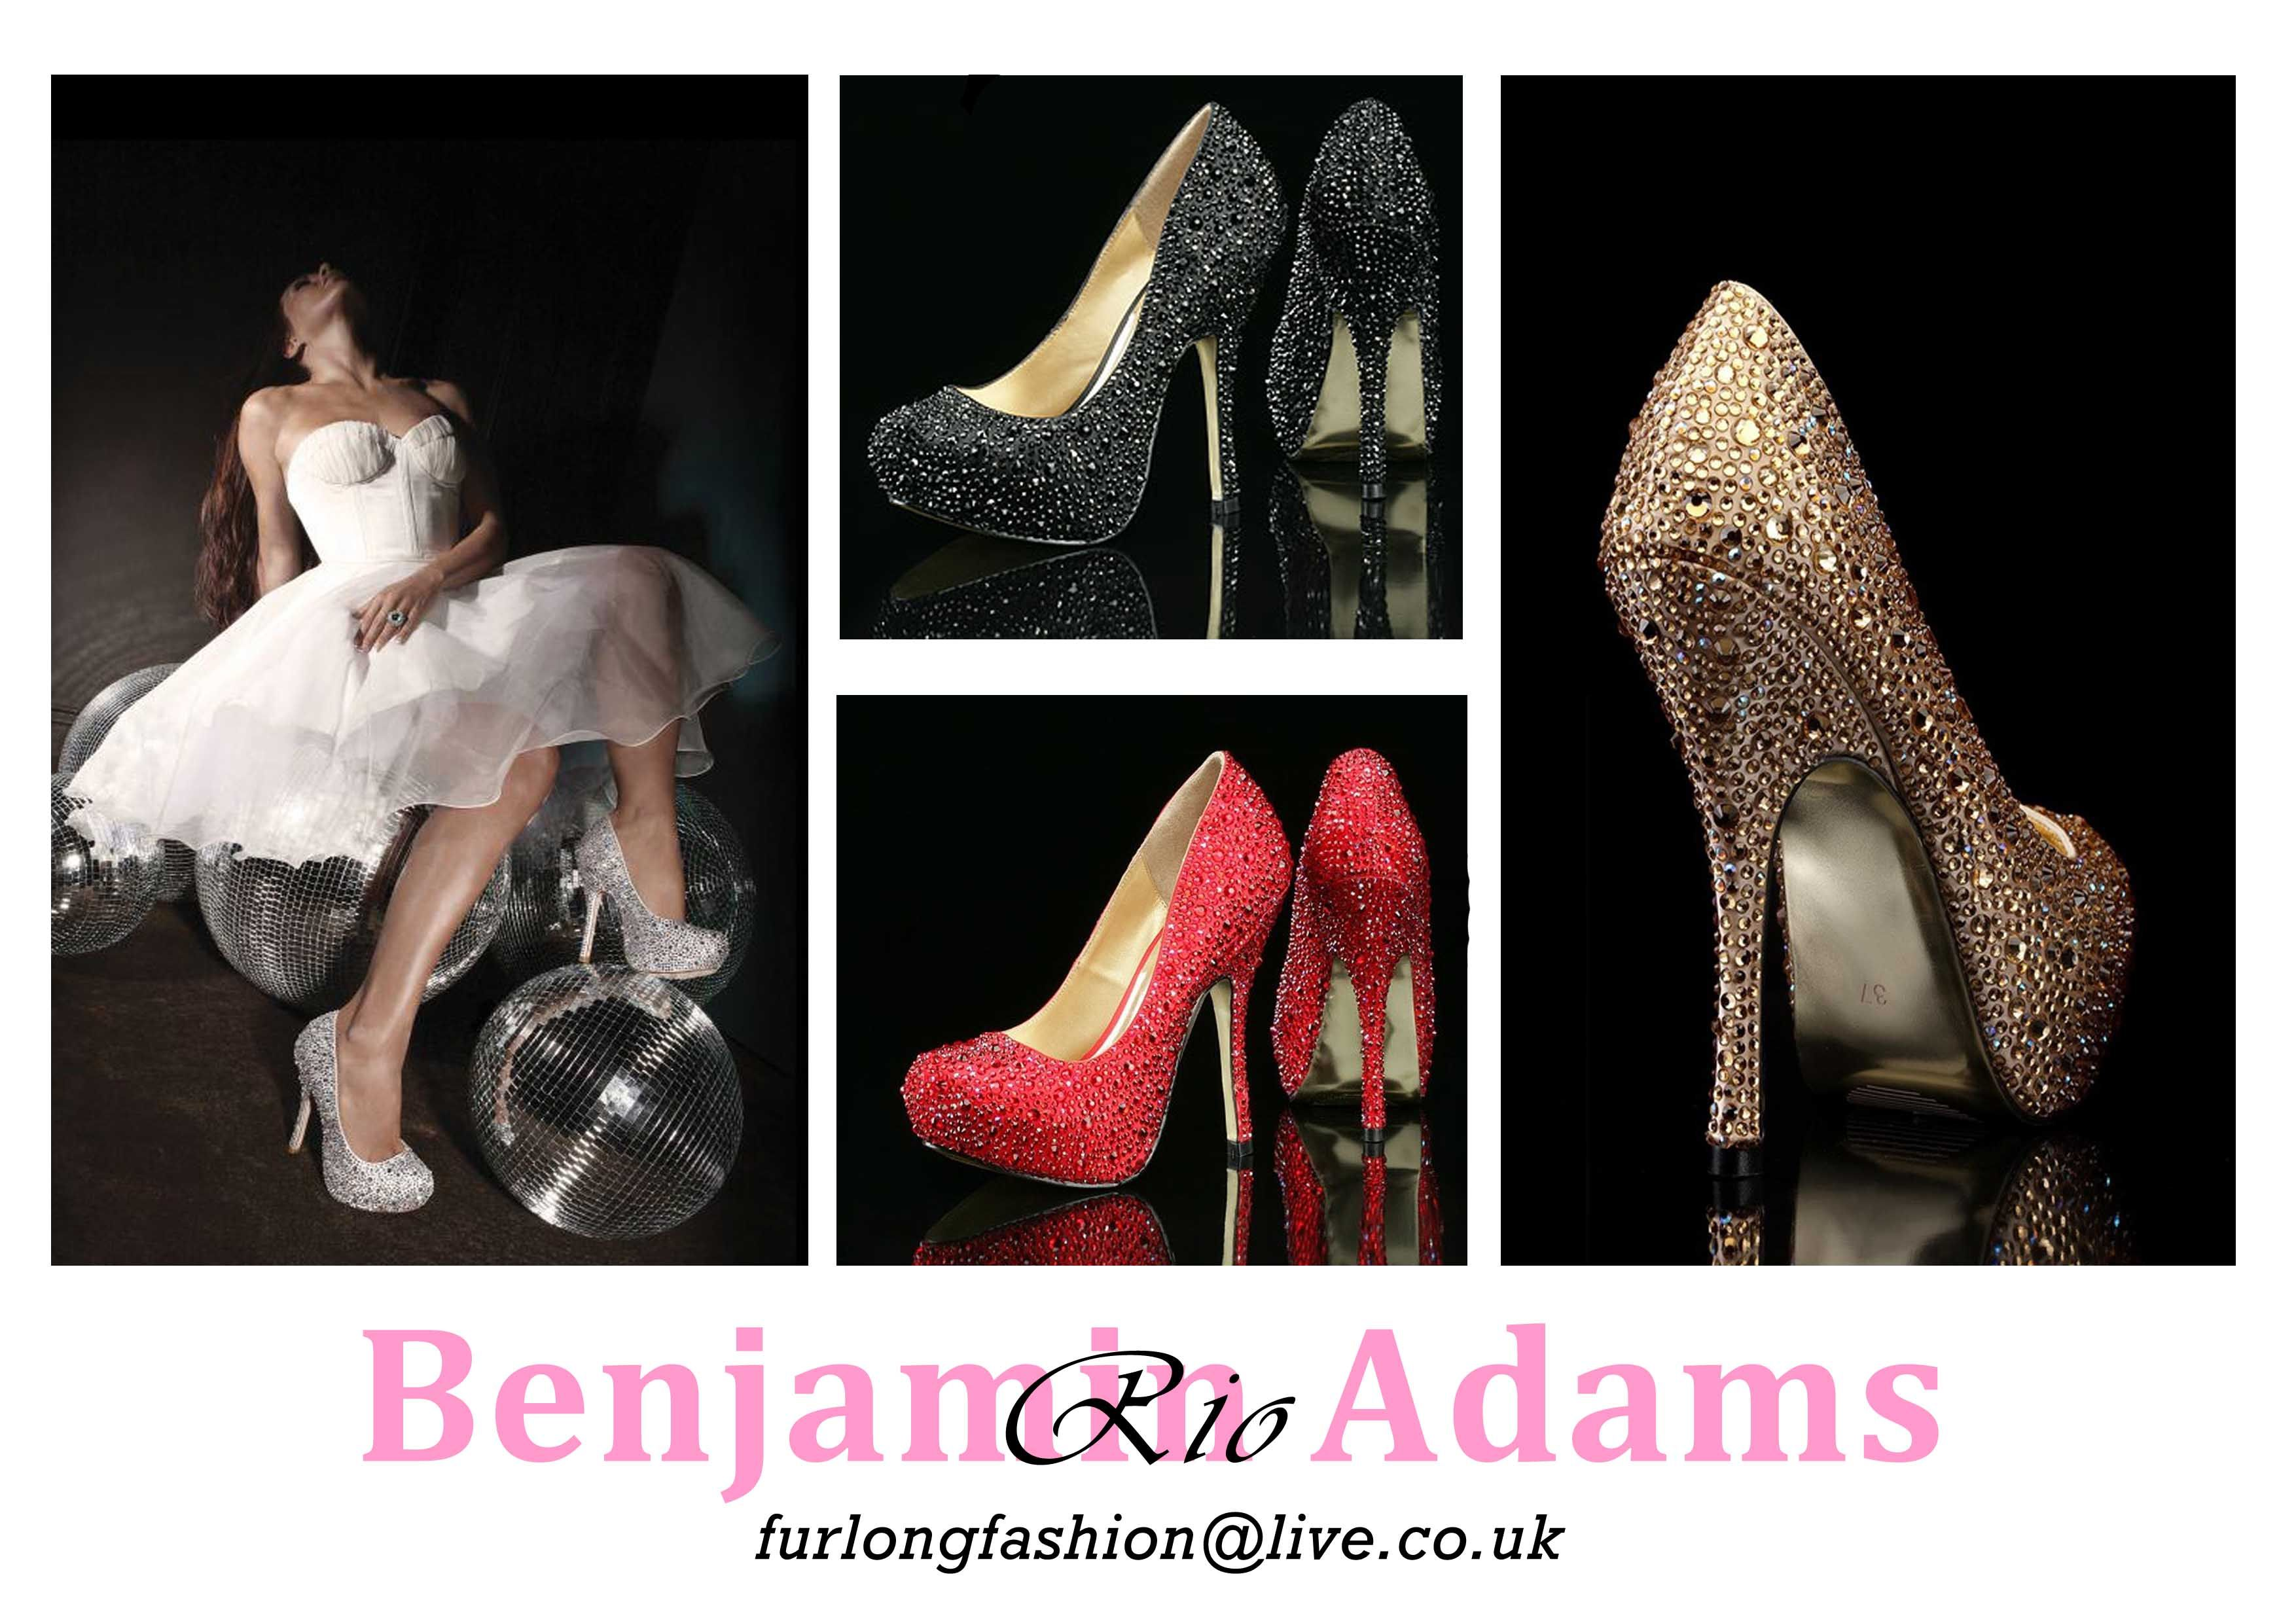 Rio evening shoes are elegant, fashionable and versatile